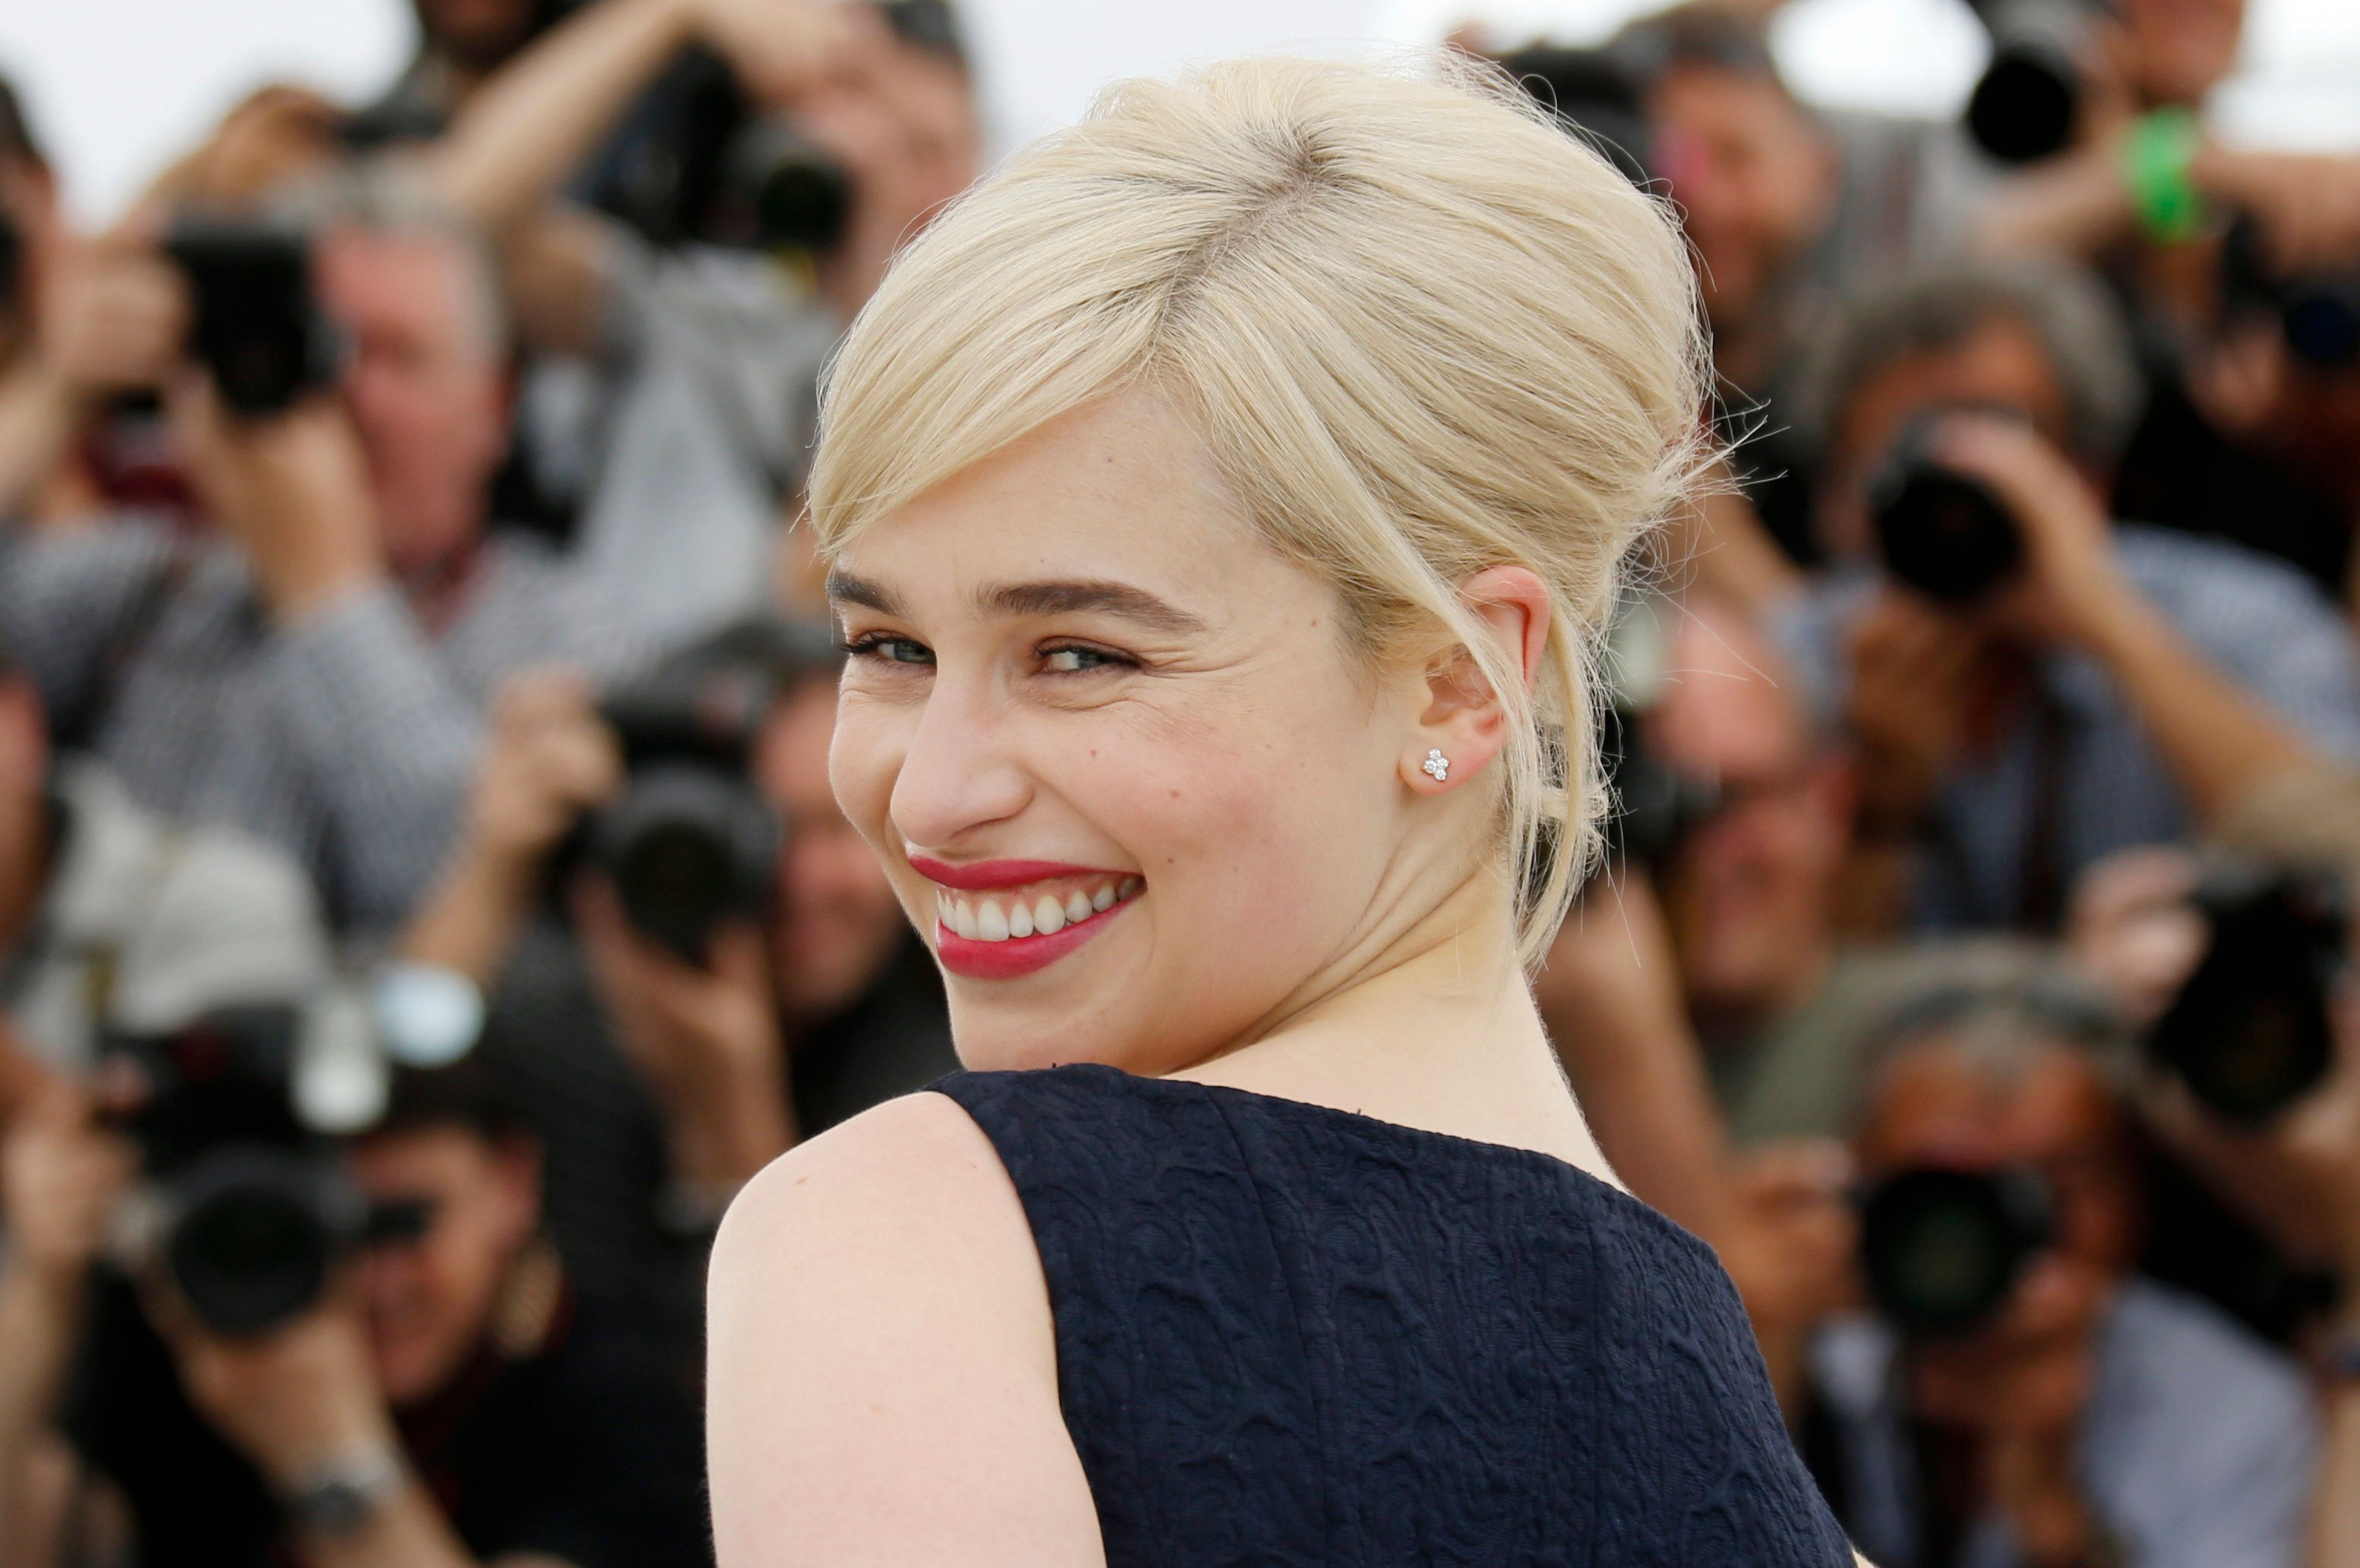 Emilia Clarke debuts new, short hair style on Instagram